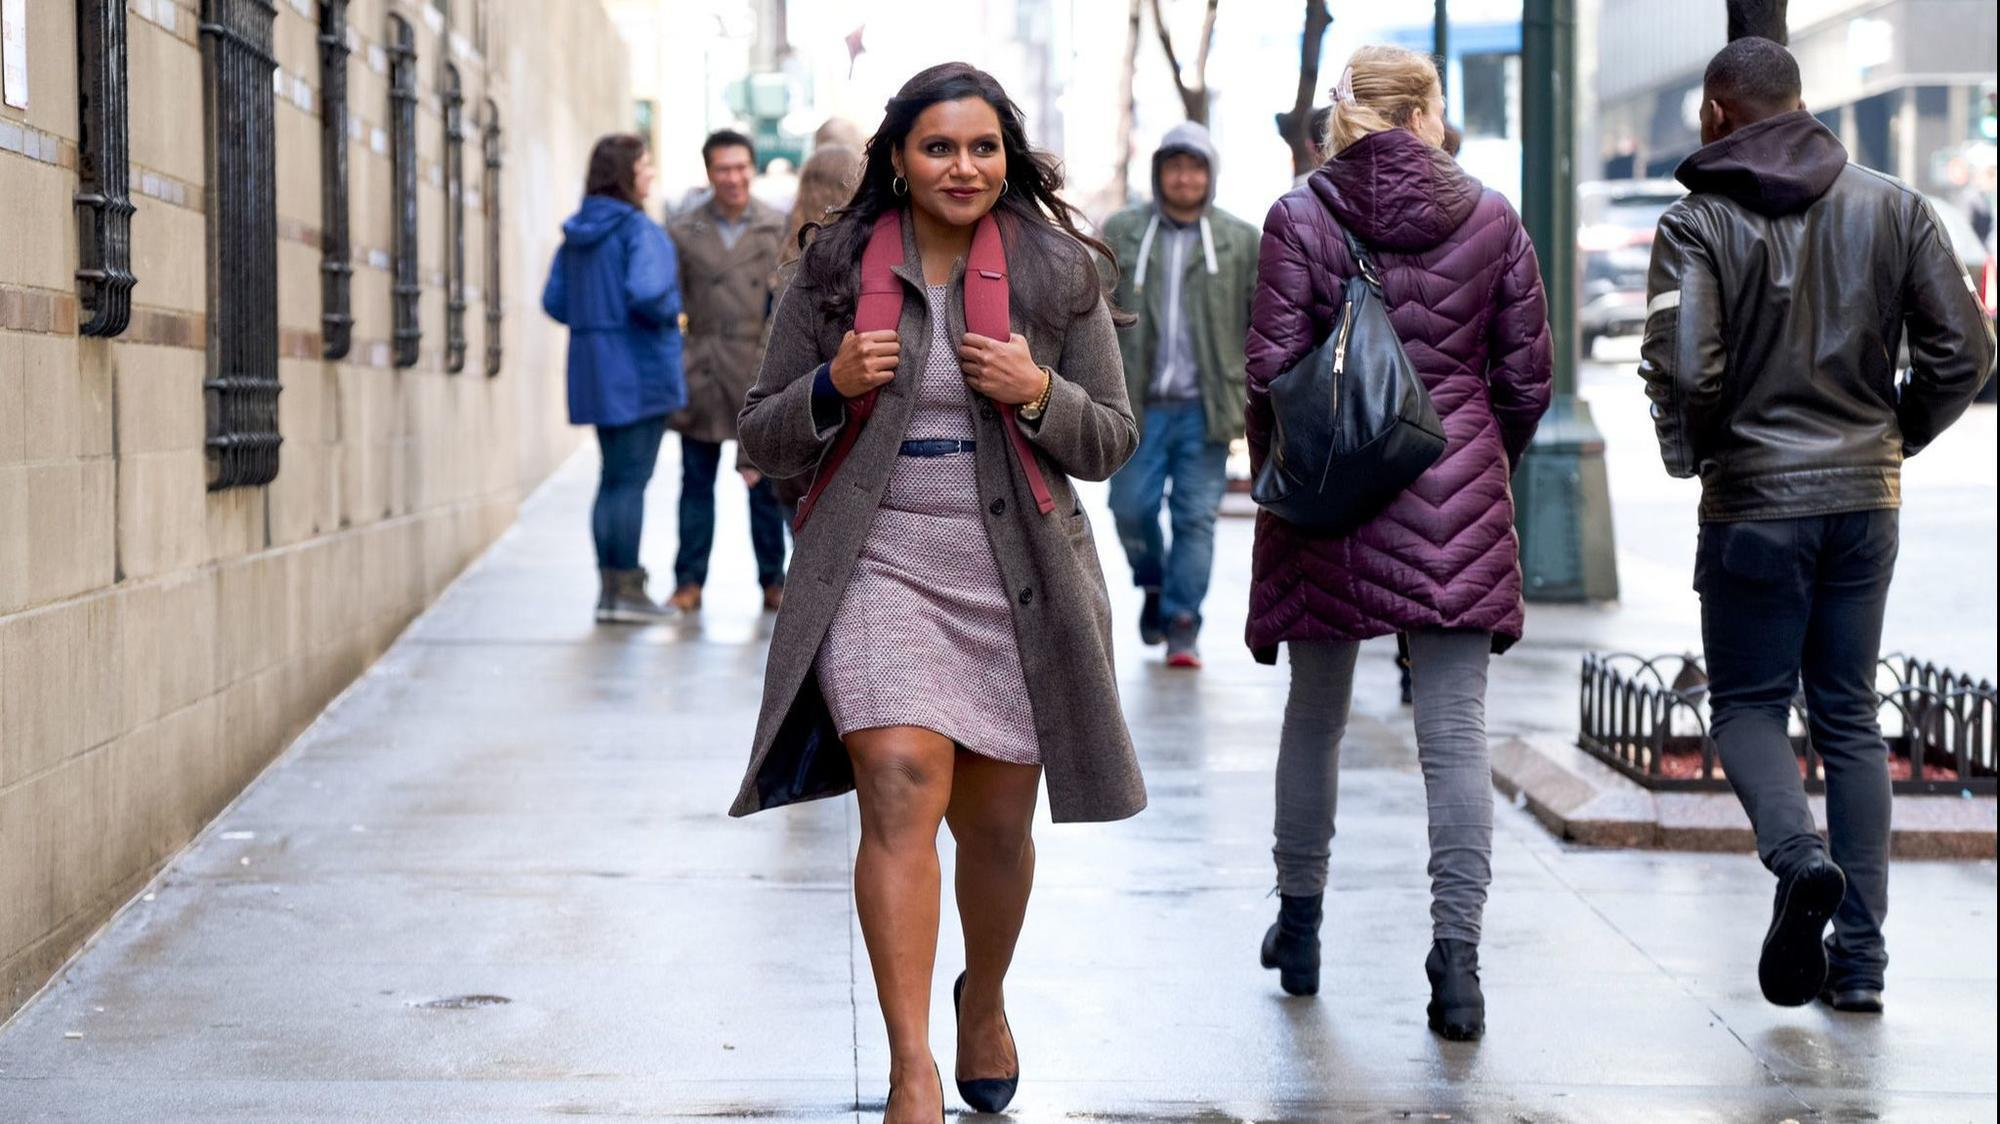 Mindy Kaling's highly anticipated 'Late Night' debuts first trailer